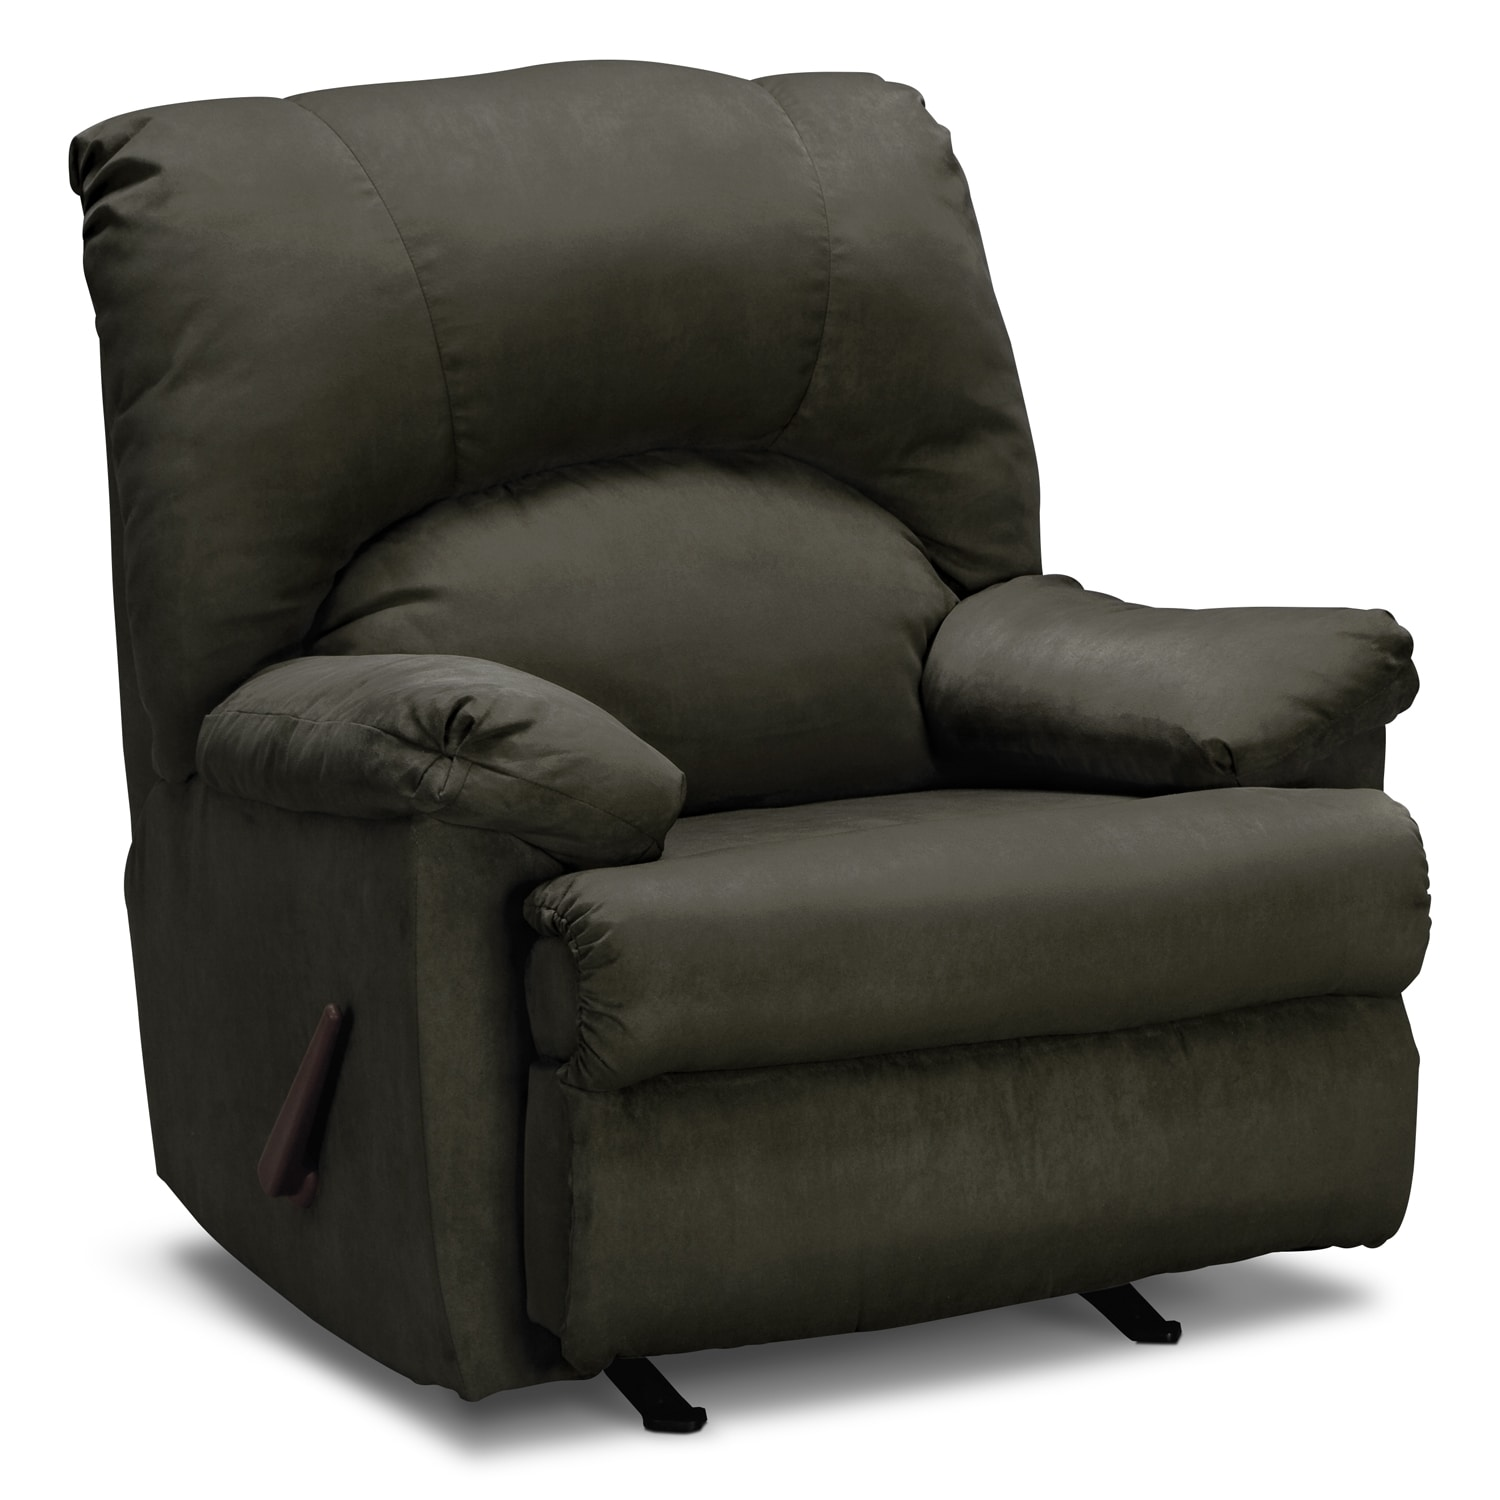 Living Room Furniture - Quincy Rocker Recliner - Loden